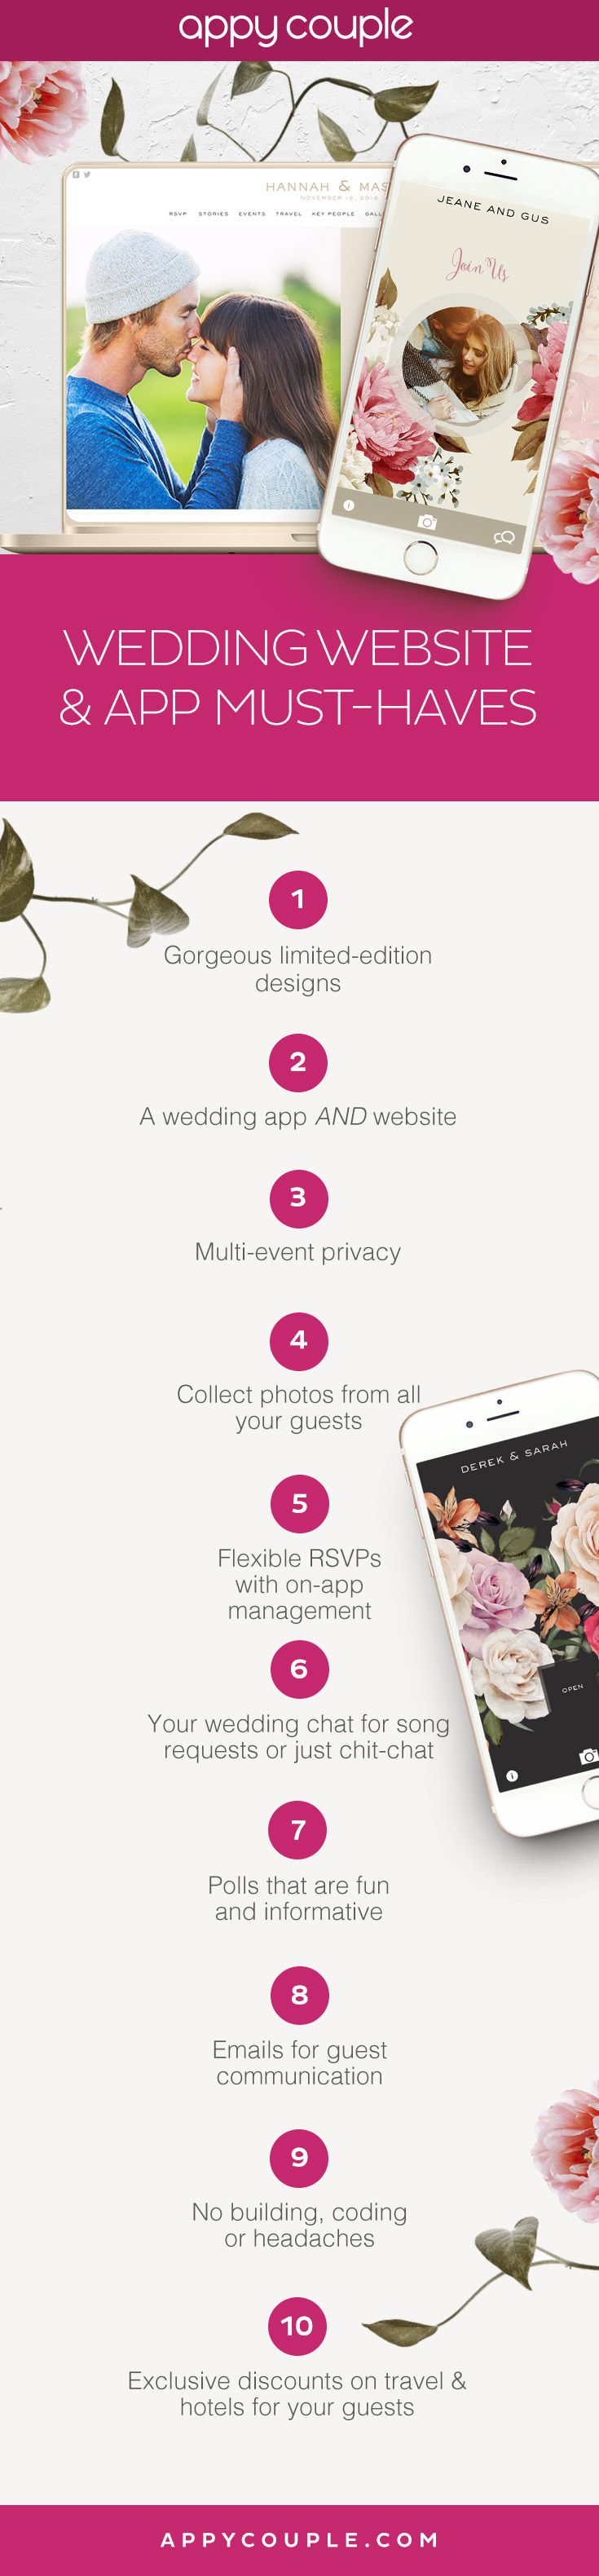 55 best wedding website and app images on pinterest wedding app a stylish multi tasking wedding website and app for you and your guests share events manage rsvps collect photos and more junglespirit Choice Image